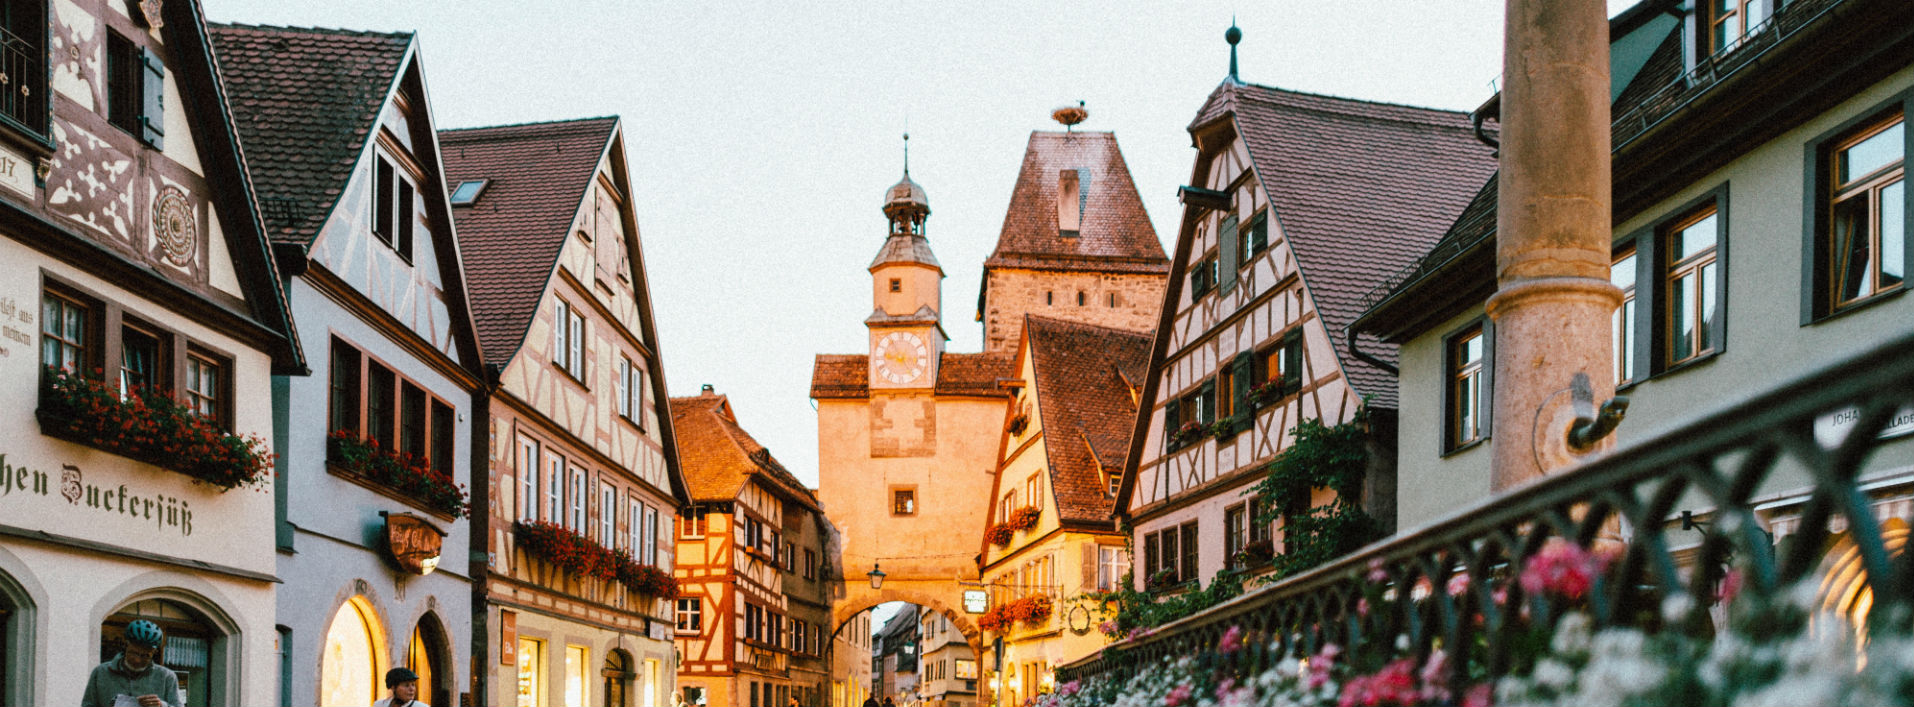 Bespeaking German Teachers- small village in Germany, city center.